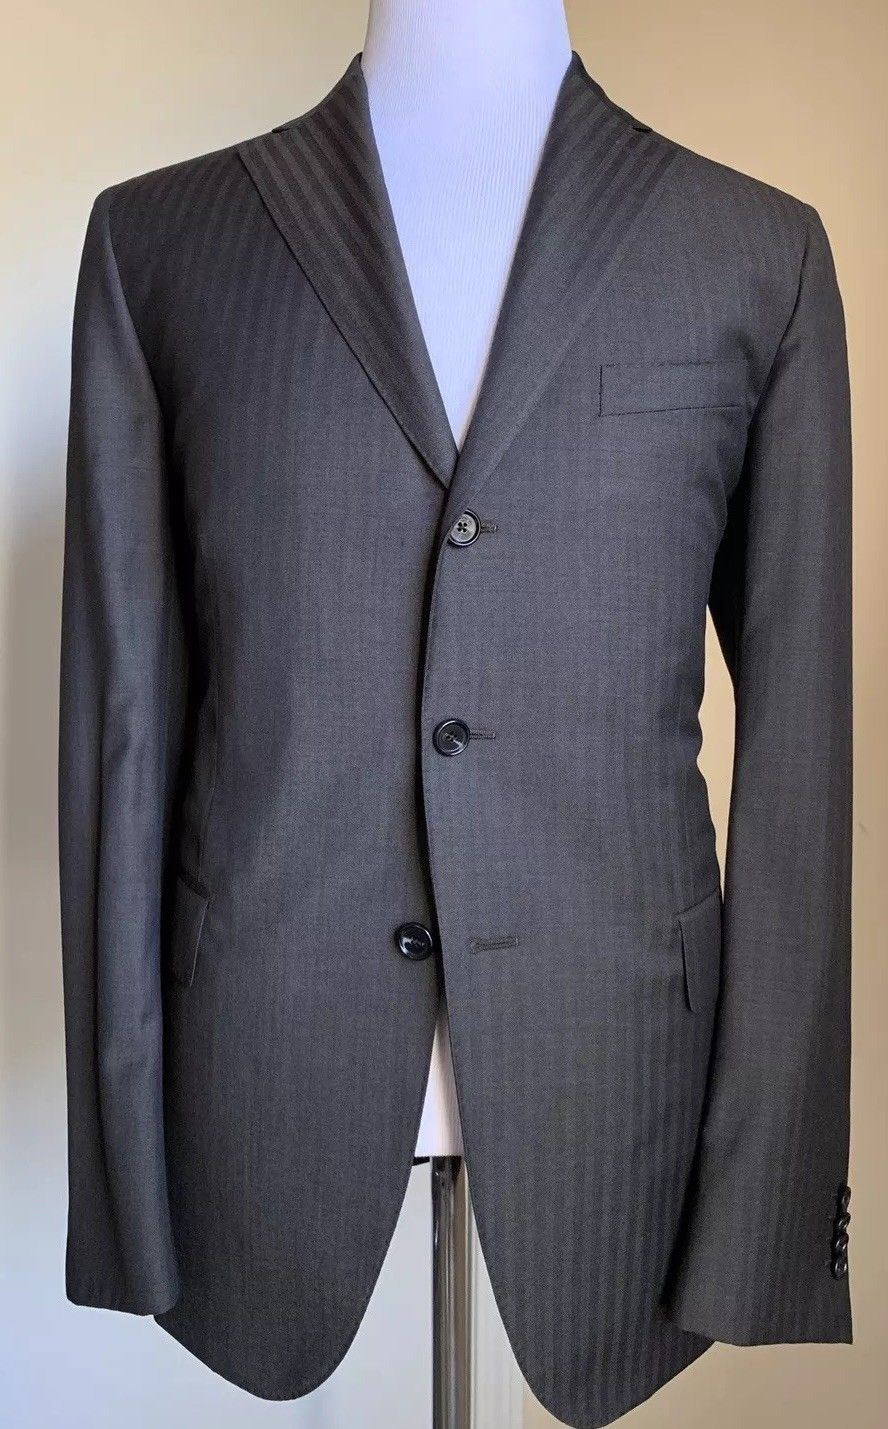 New $1500 Caruso Mens Neaplitan Suit Super 110S DK Brown 44R US ( 54R Eur) Italy